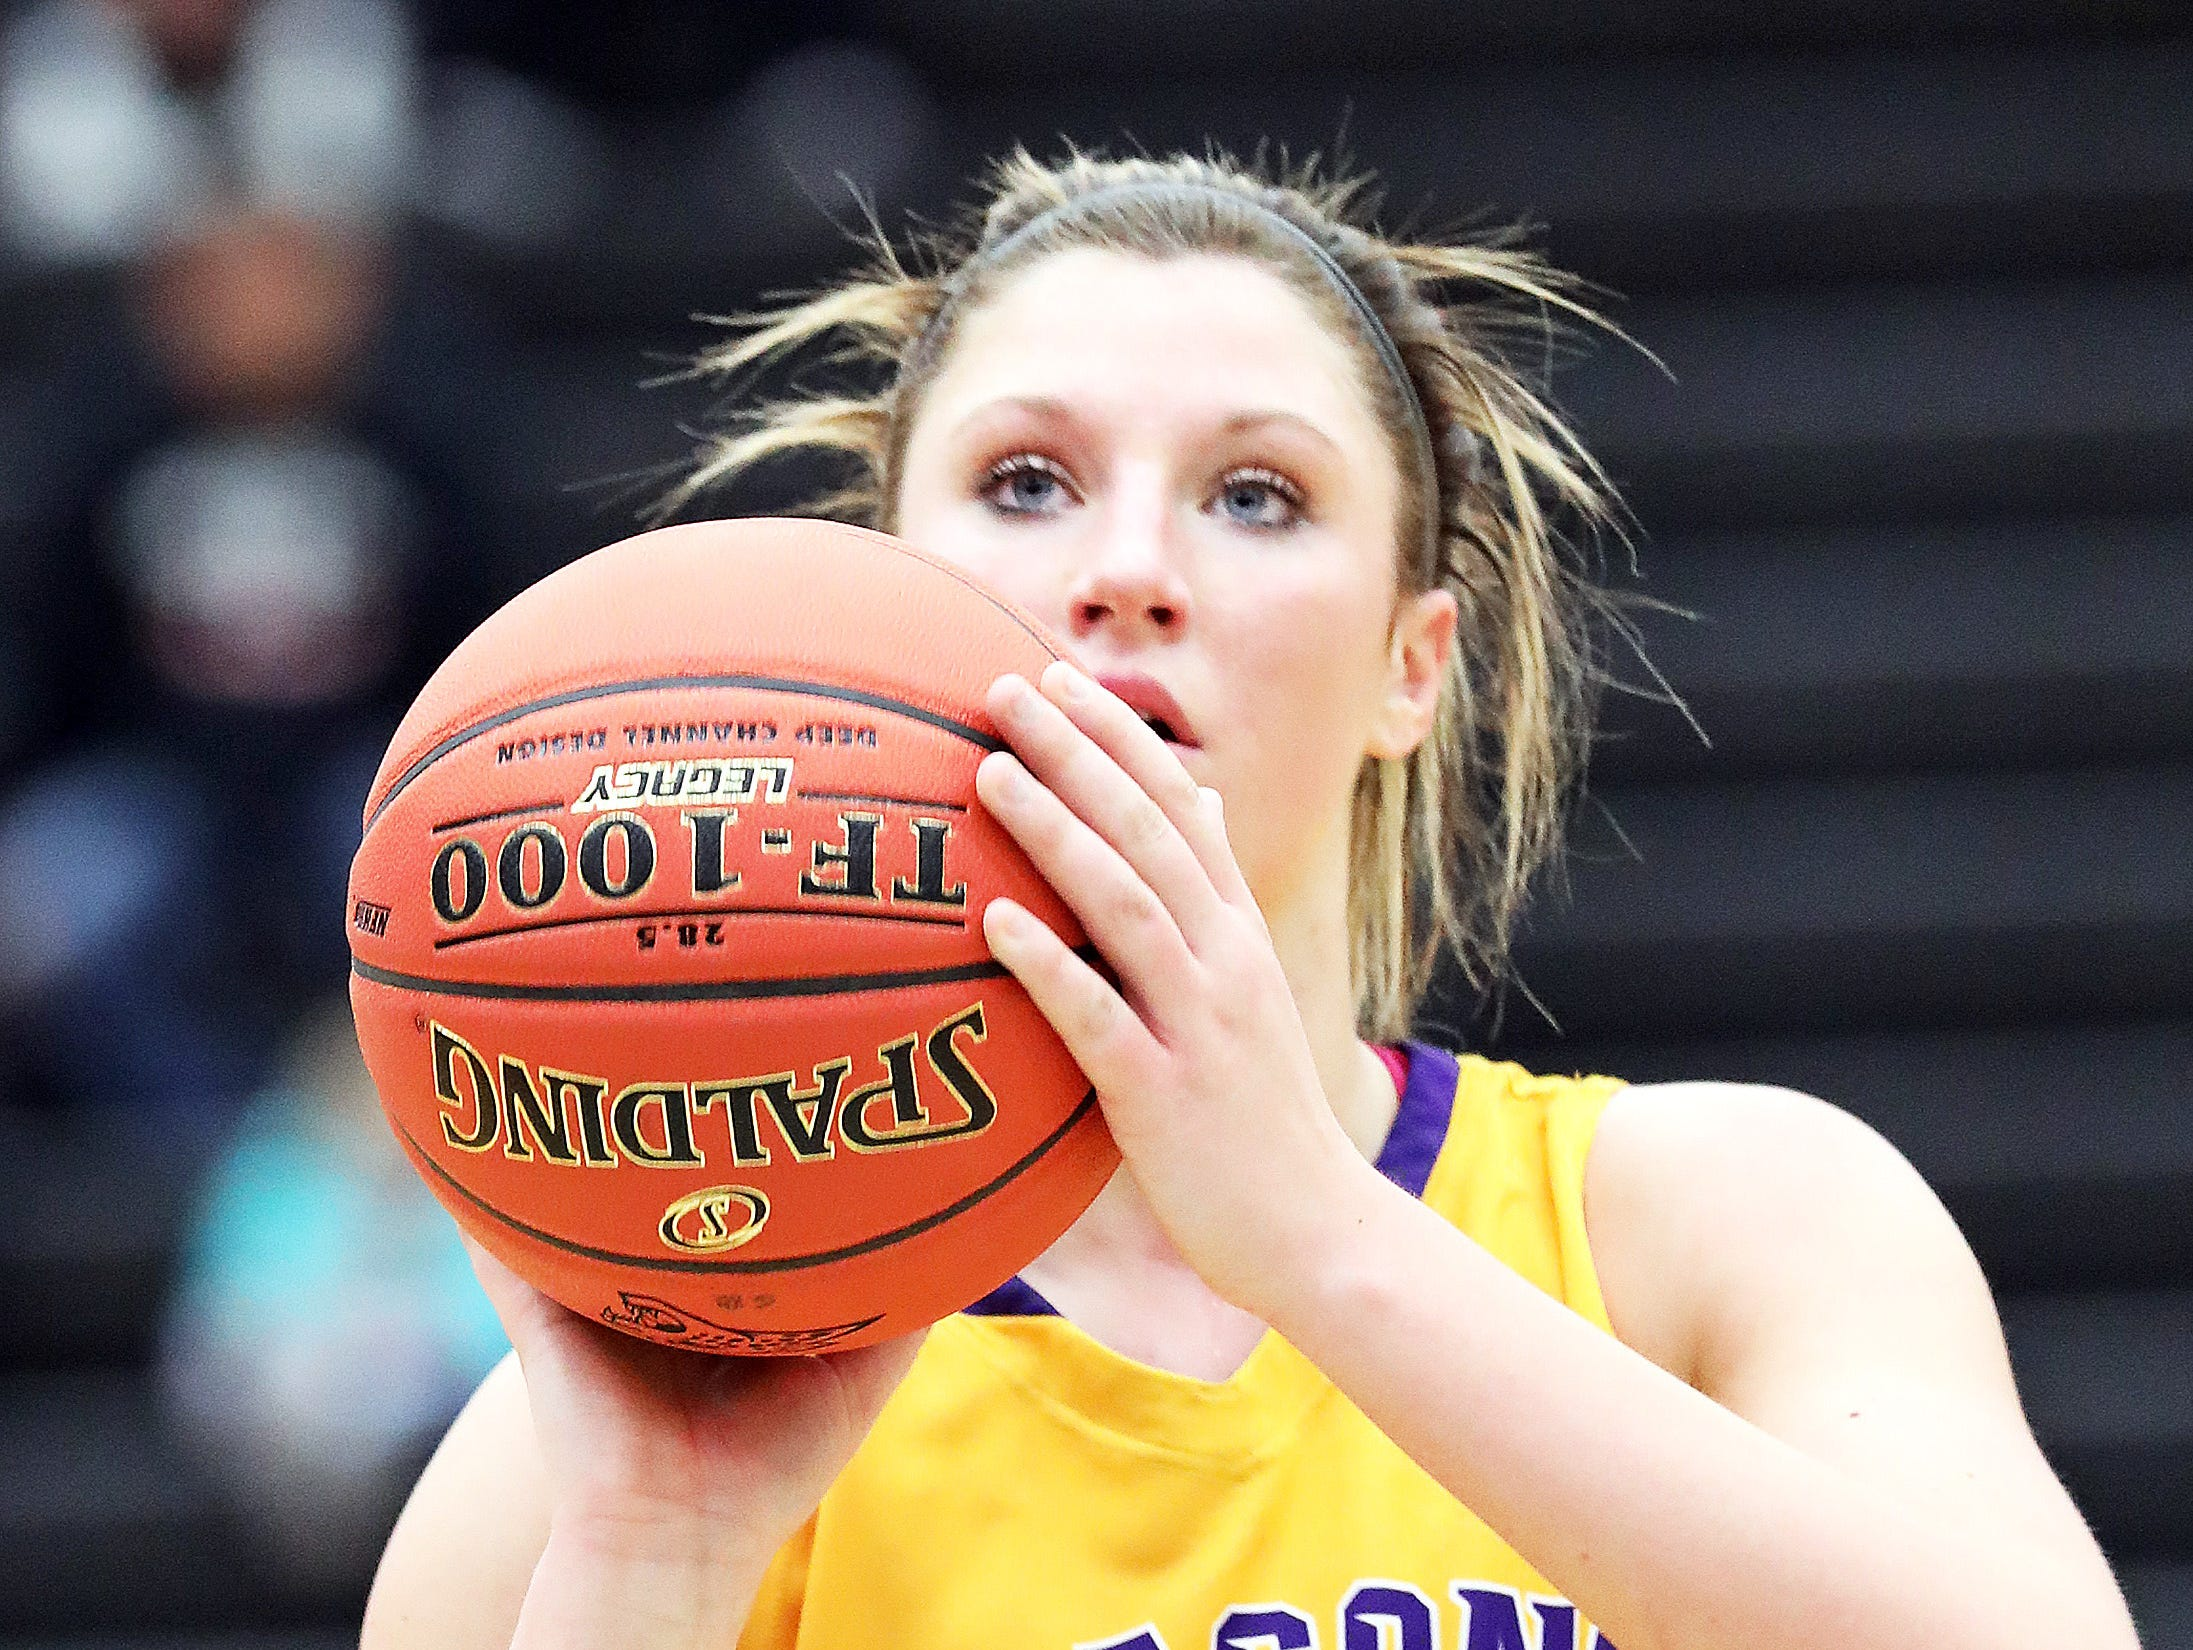 Johnston junior Maddie Mock eyes another free throw as the Johnston Dragons compete against the Ankeny Centennial Jaguars in high school girls basketball on Friday, Jan. 4, 2019 at Ankeny Centennial High School.